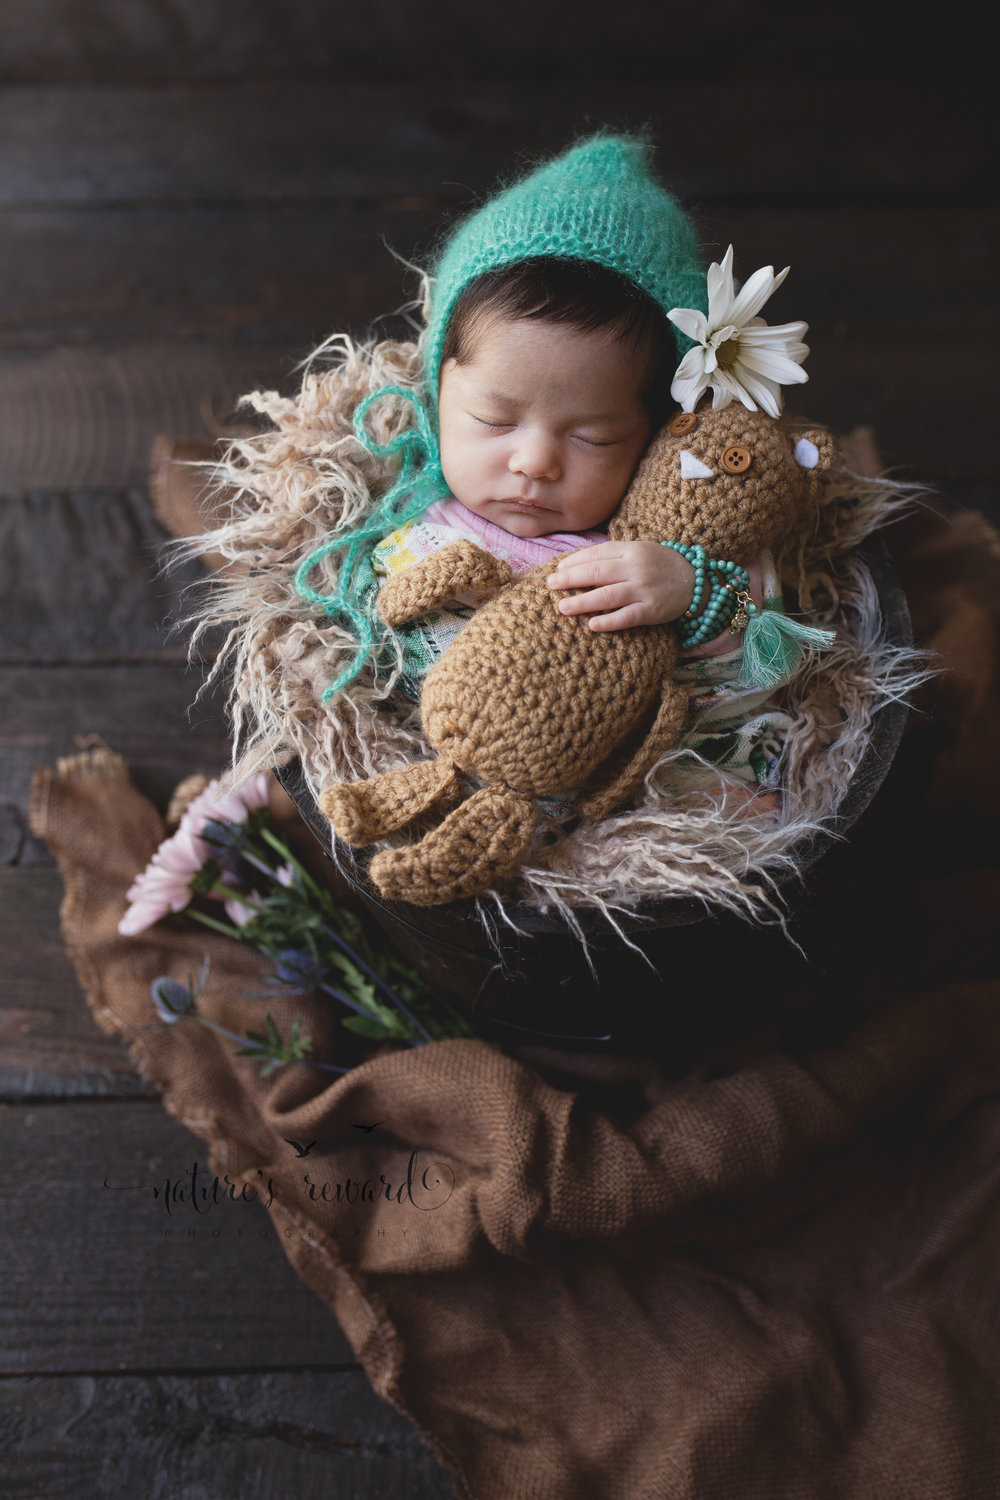 And the light and the burlap, the flowers, the daisy in her bonnet and the teddy pulling in the browns and then the magic happened in this newborn image. Image by Nature's Reward Photography